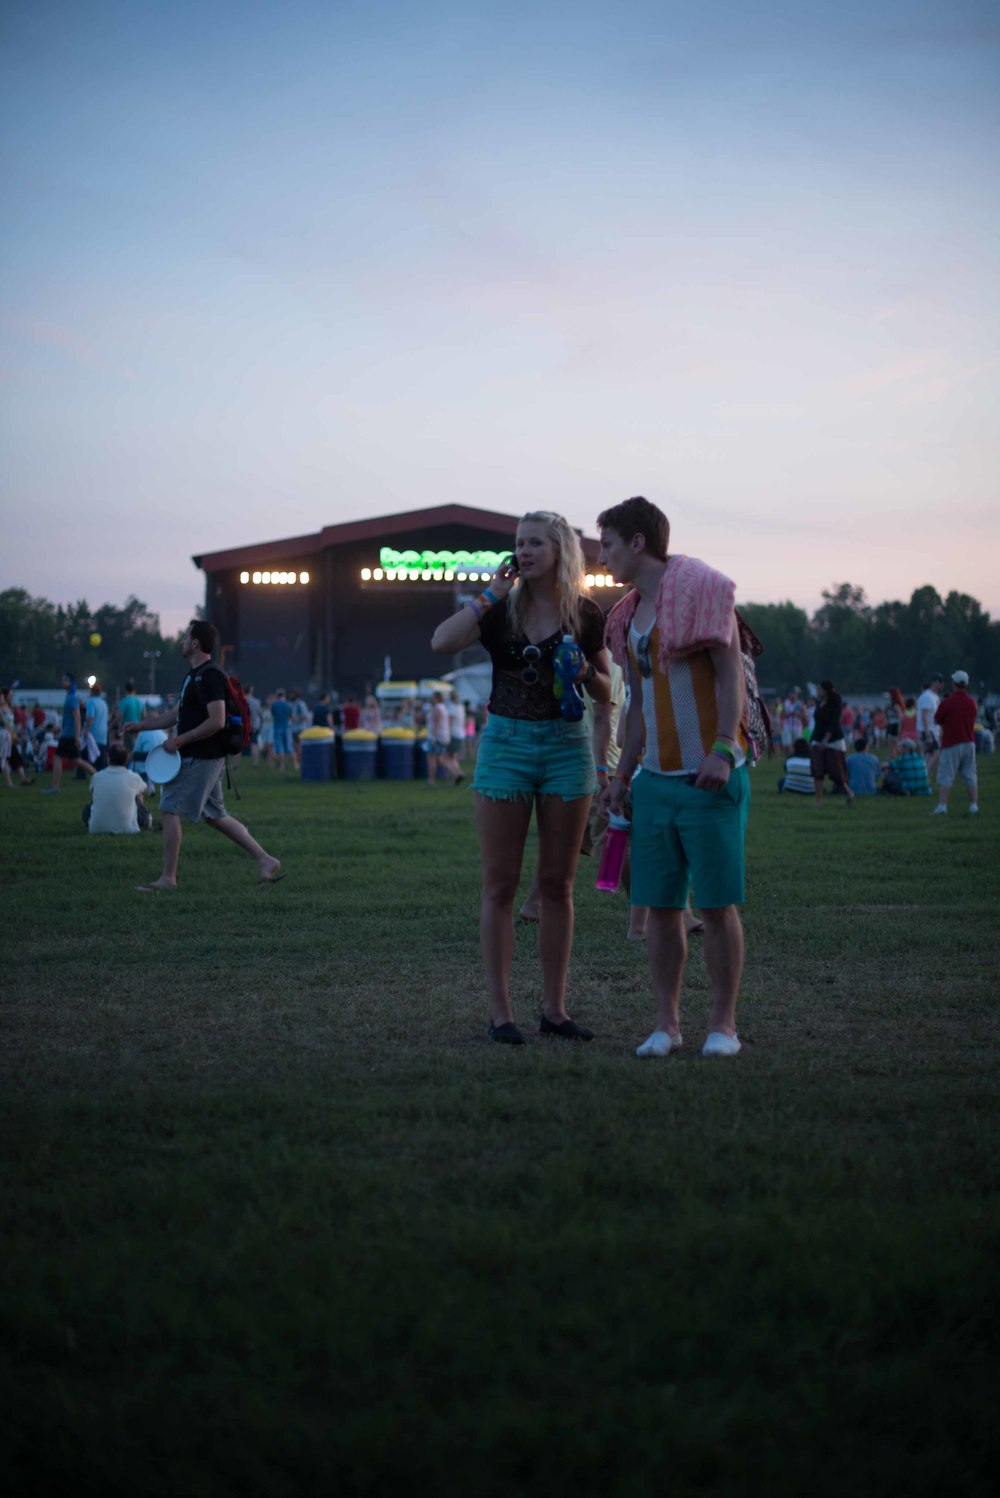 If you have never been to Bonnaroo before, it is easy to lose your friends.  Luckily... we know the drill.